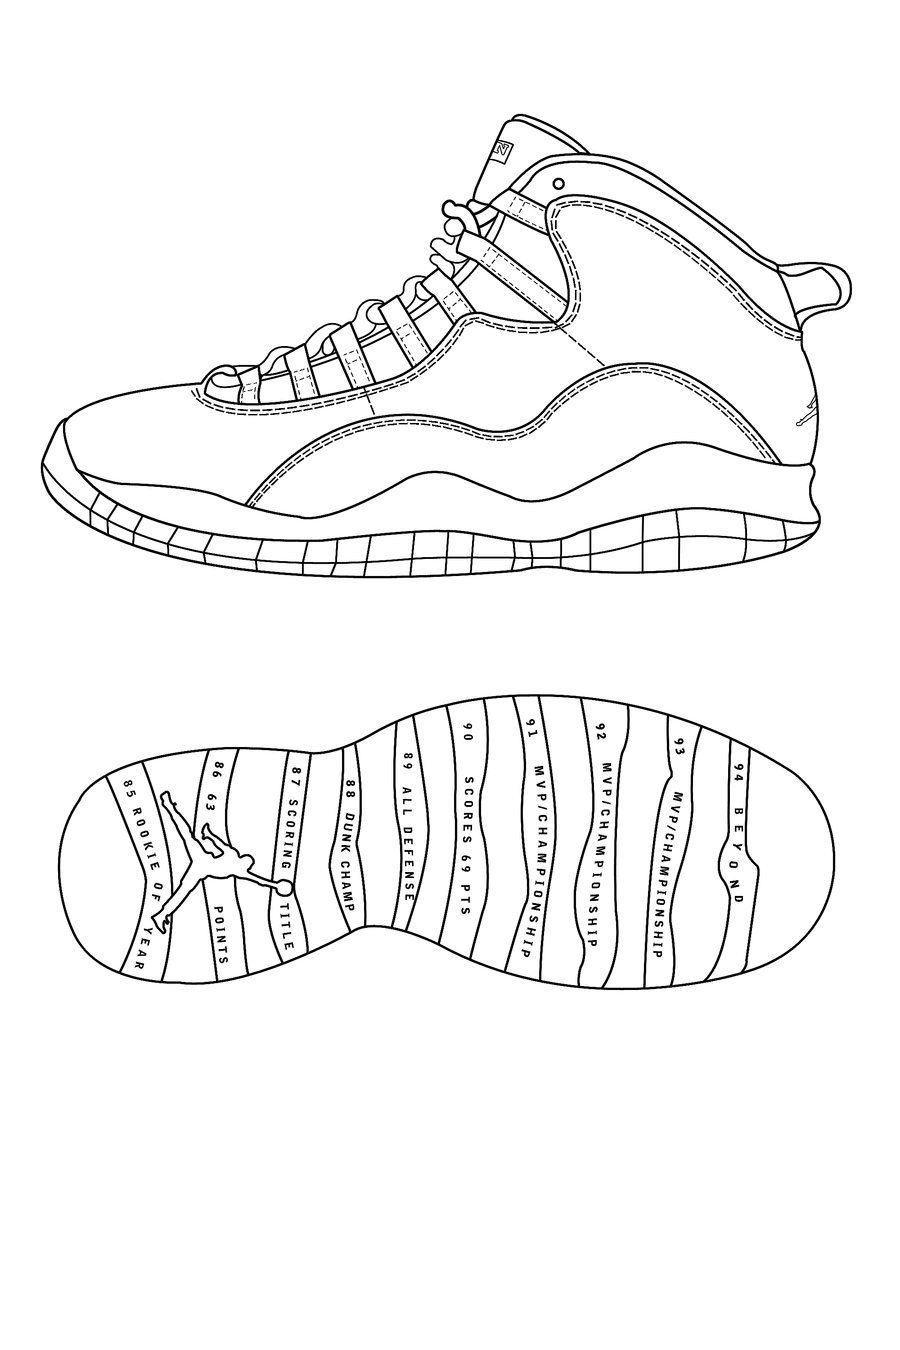 Coloring pages for jordans - Sneaker Design Lesson Plan Careers In The Arts